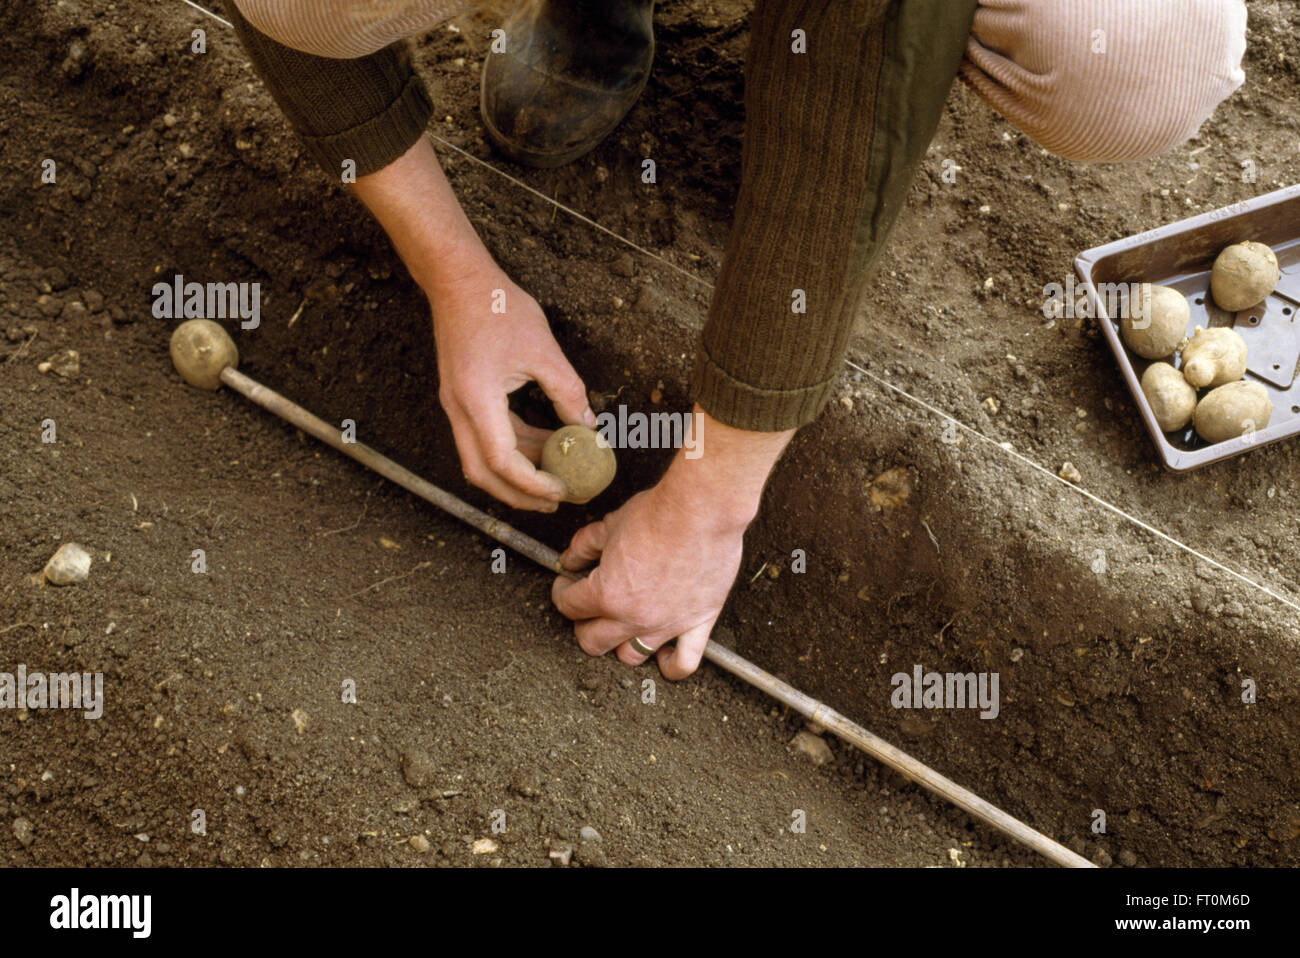 Close-up of a gardener using a bamboo cane to plant a row of potatoes - Stock Image